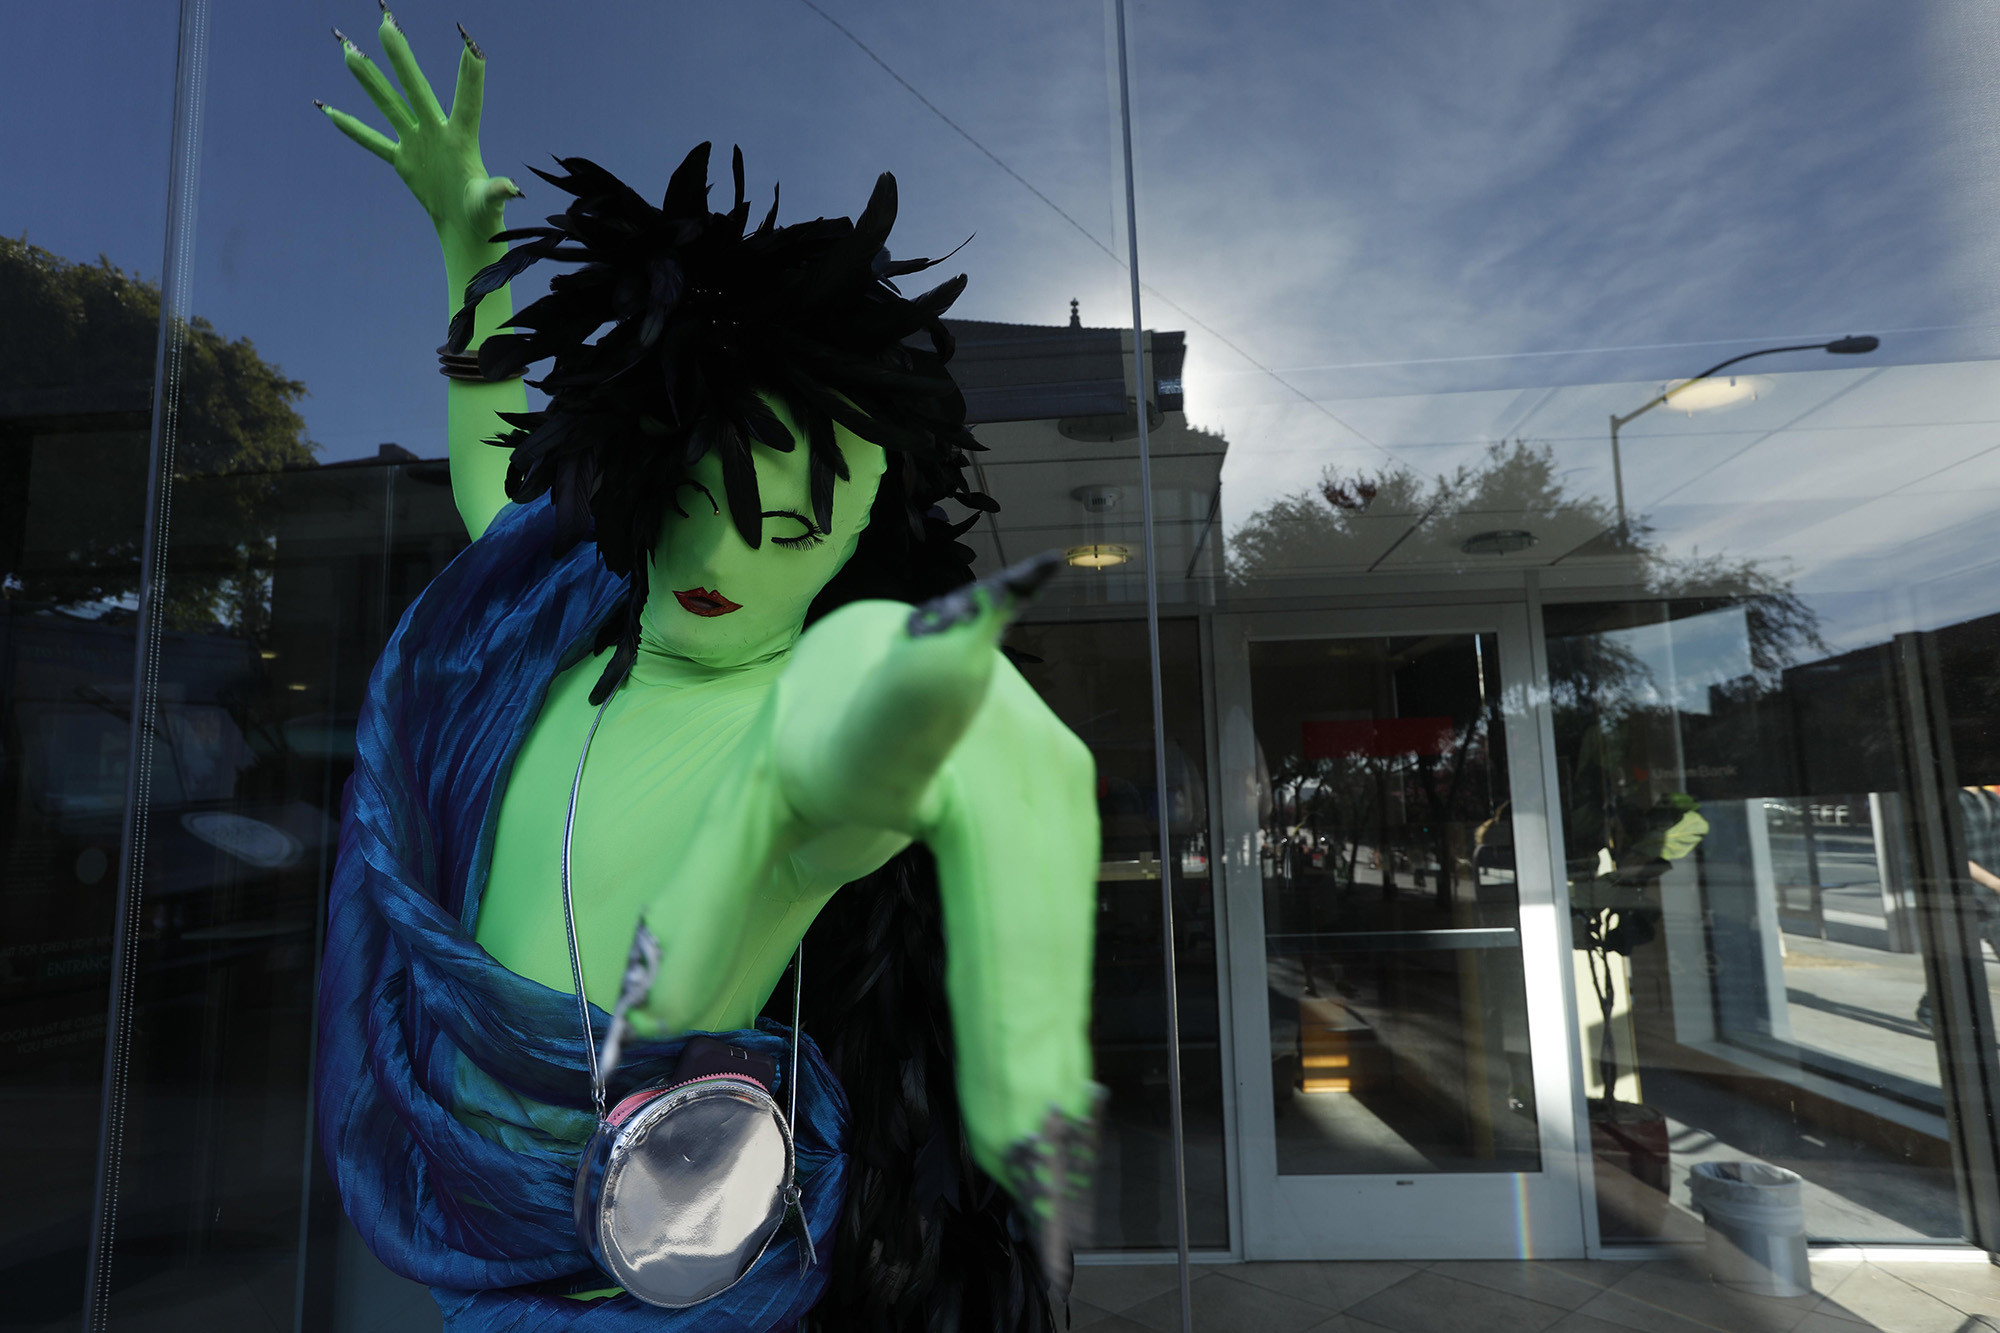 WEST HOLLYWOOD, CA – OCTOBER 31, 2018 - - Houston Heller gets into character while attending the ann